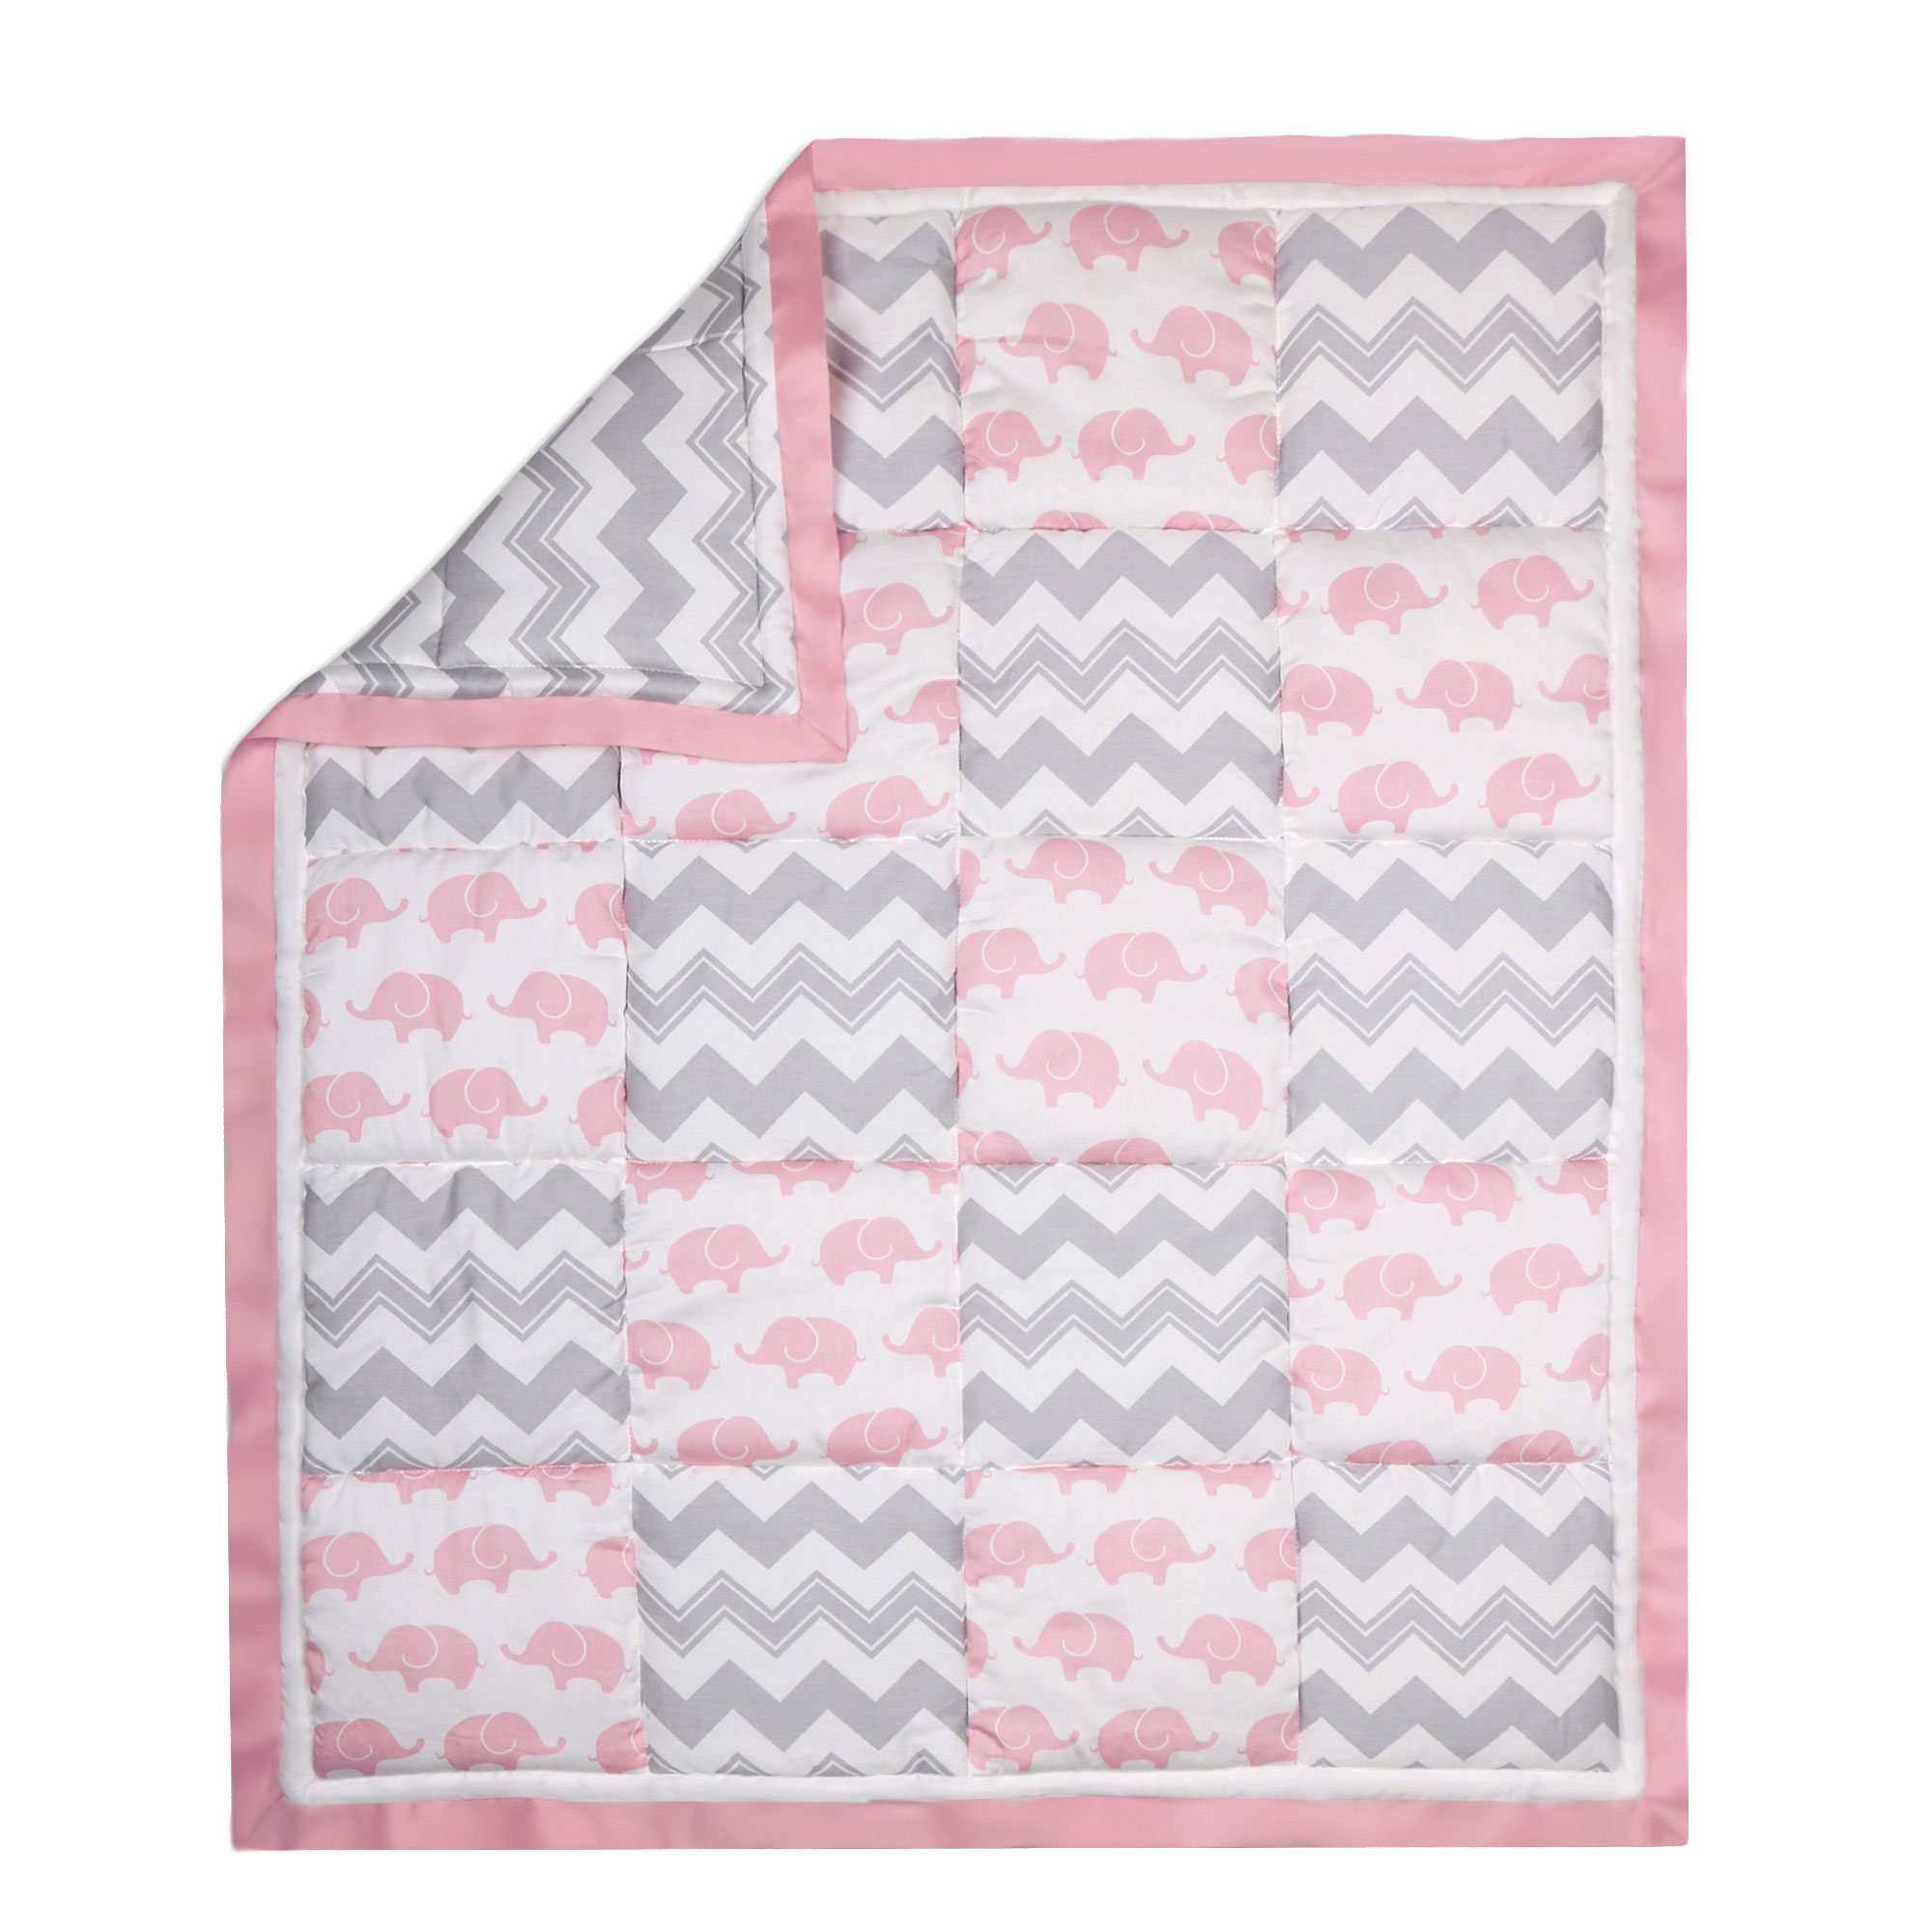 Grey and Pink Elephant and Zig Zag Crib Quilt by The Peanut Shell